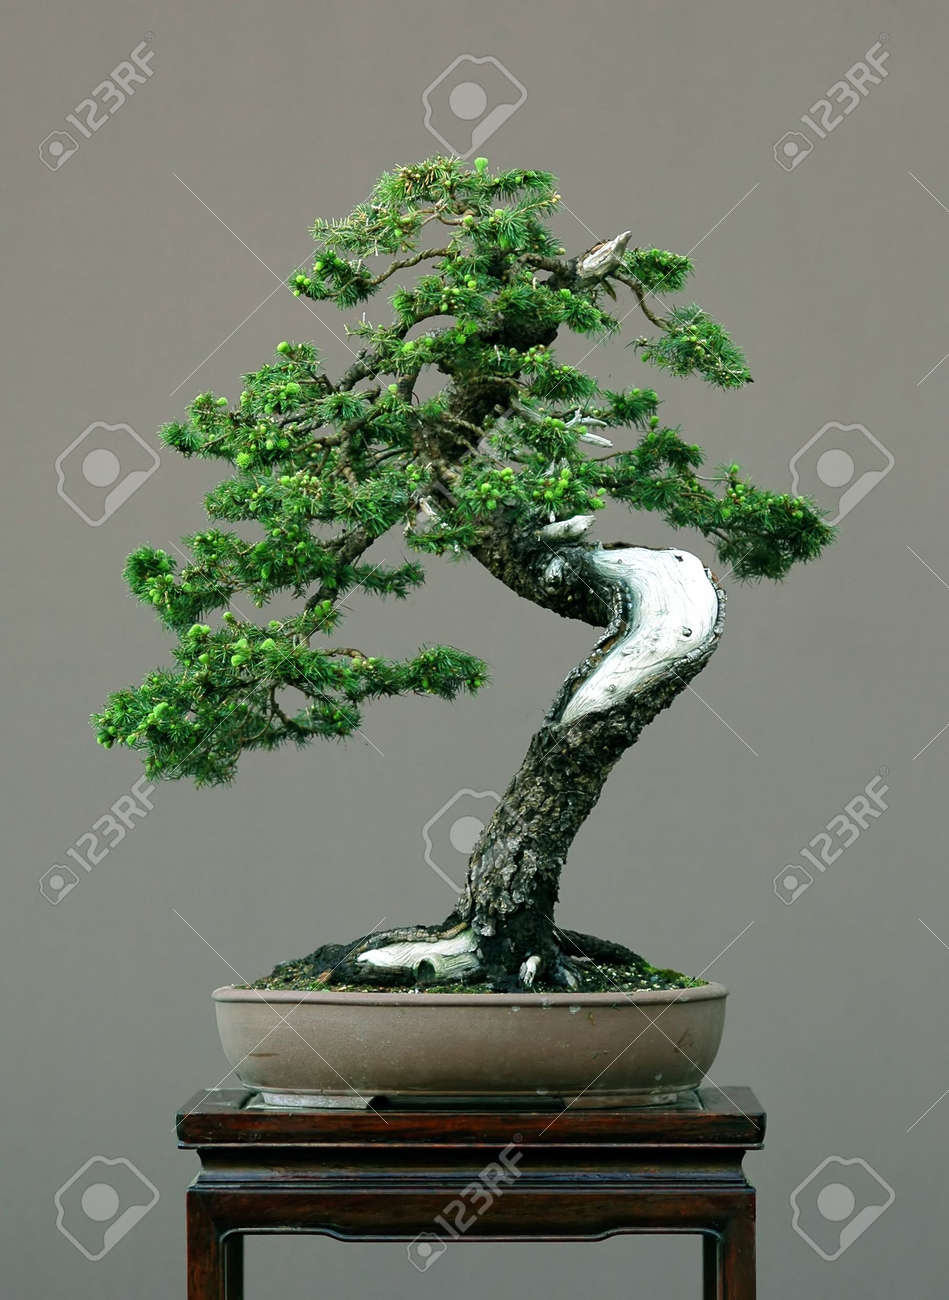 Spruce Bonsai With Deadwood Picea Abies Stock Photo Picture And Royalty Free Image Image 694714